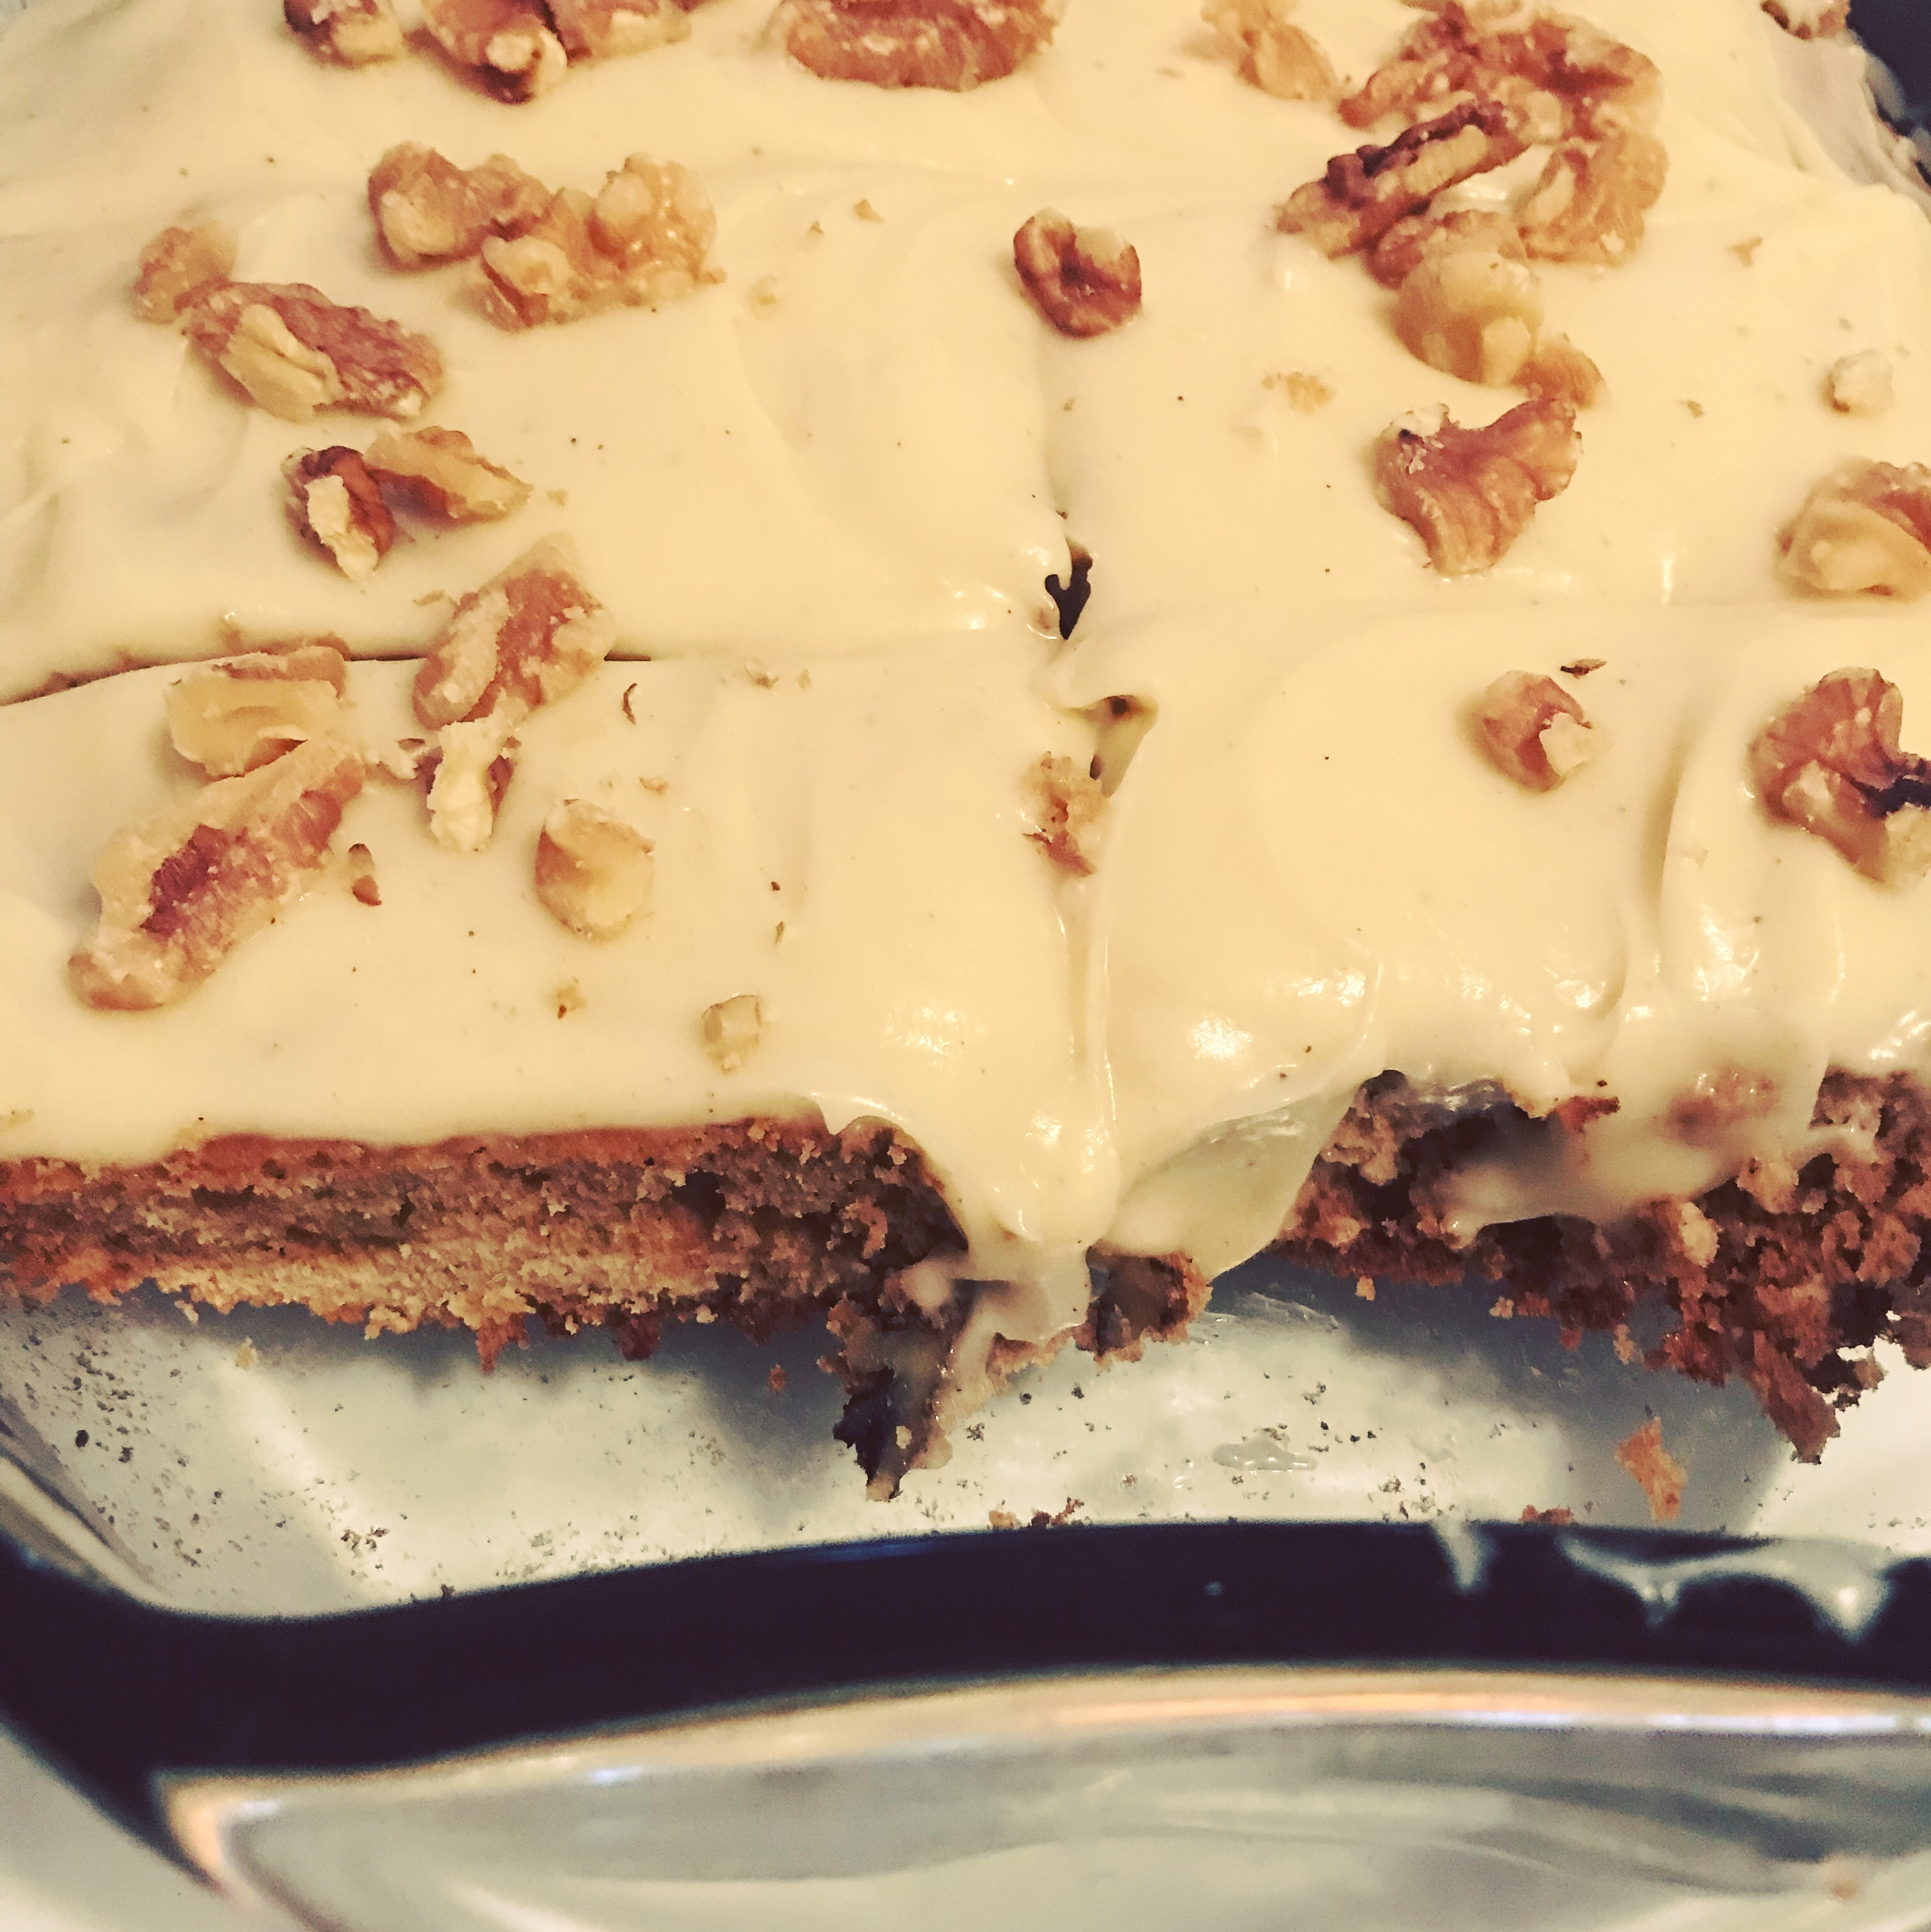 Zucchini Bars with Spice Frosting TWEE